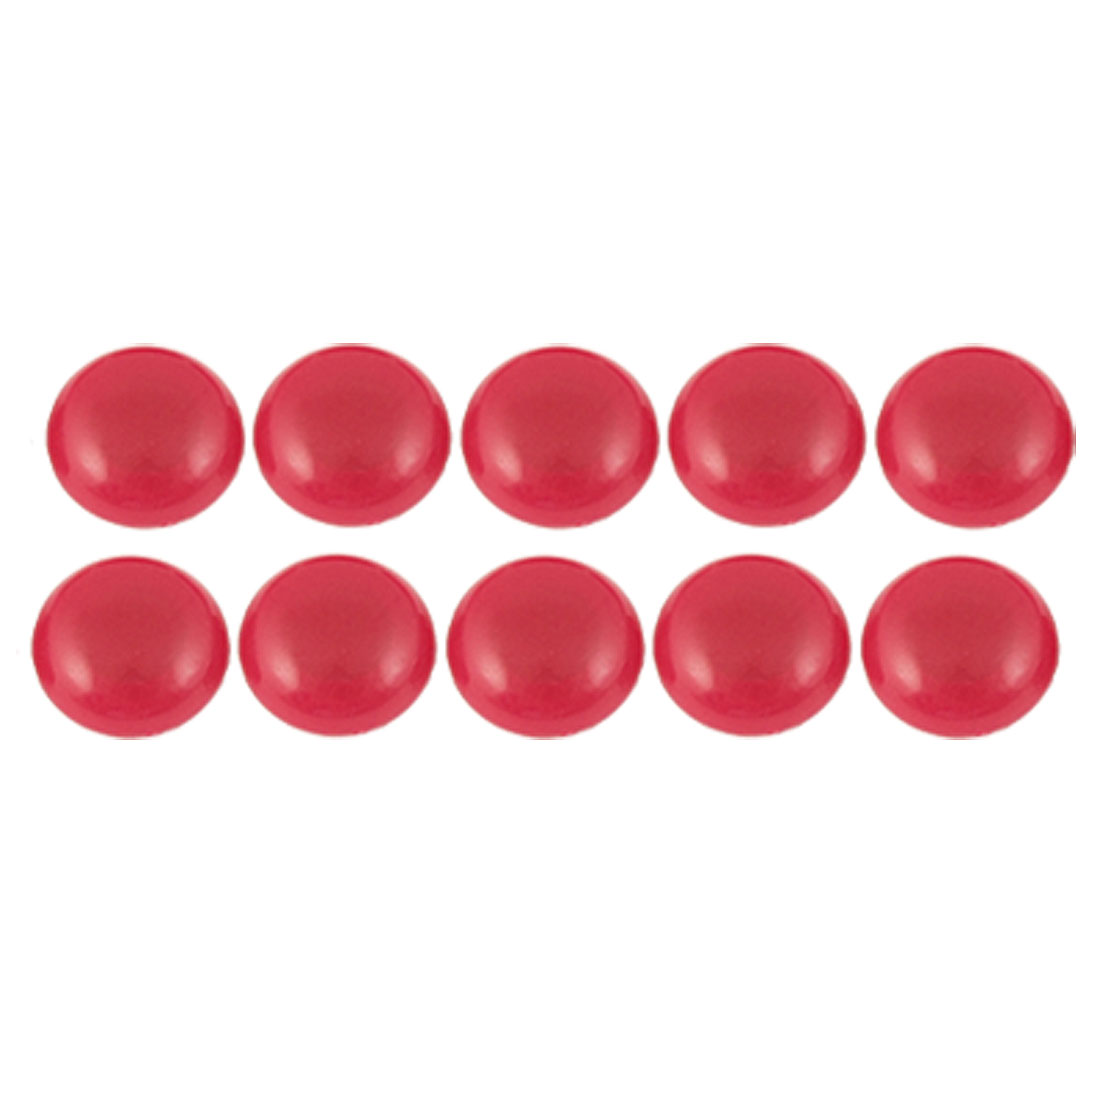 "10 Pcs 0.8"" Diameter Round Red Plastic Cover Magnetic Stickers"